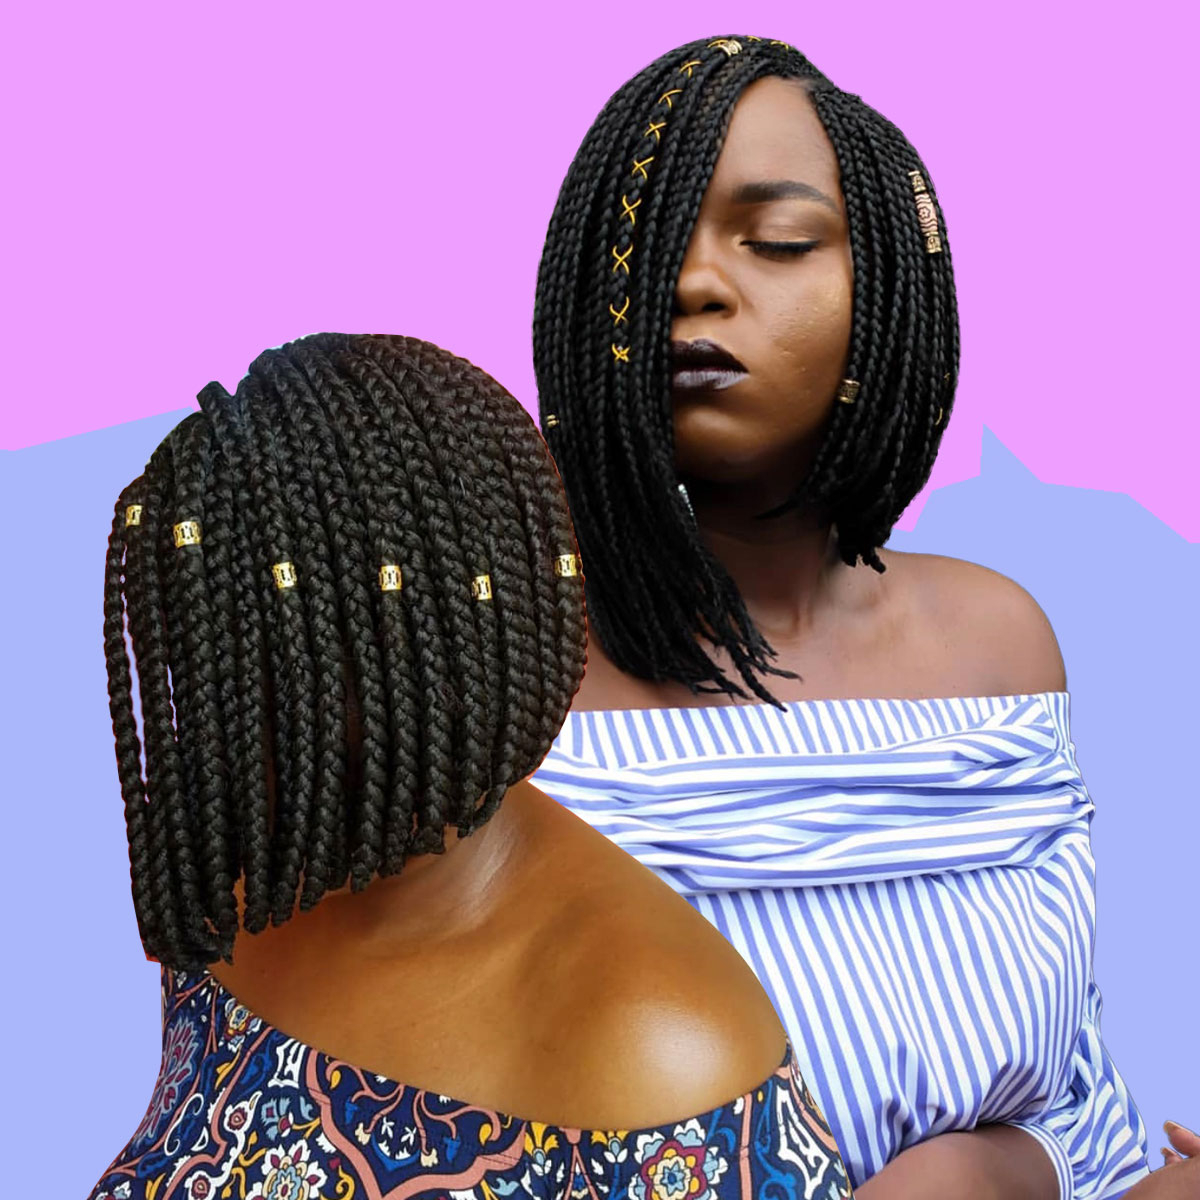 Current Layered Bob Braid Hairstyles With Regard To 17 Beautiful Braided Bobs From Instagram You Need To Give A Try (View 3 of 20)